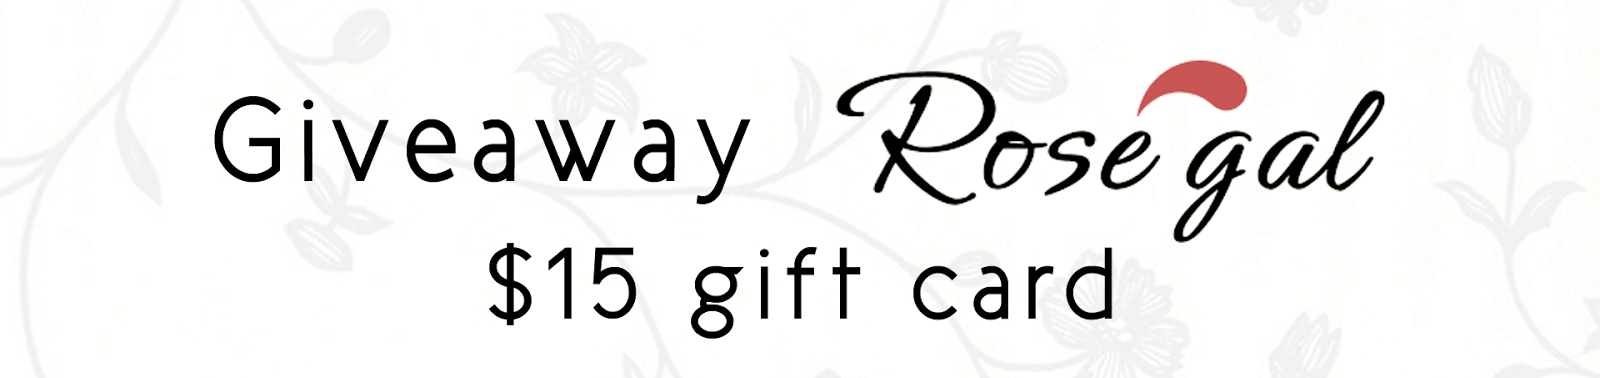 http://tictacliving.blogspot.pt/2014/08/rosegal-giveaway.html